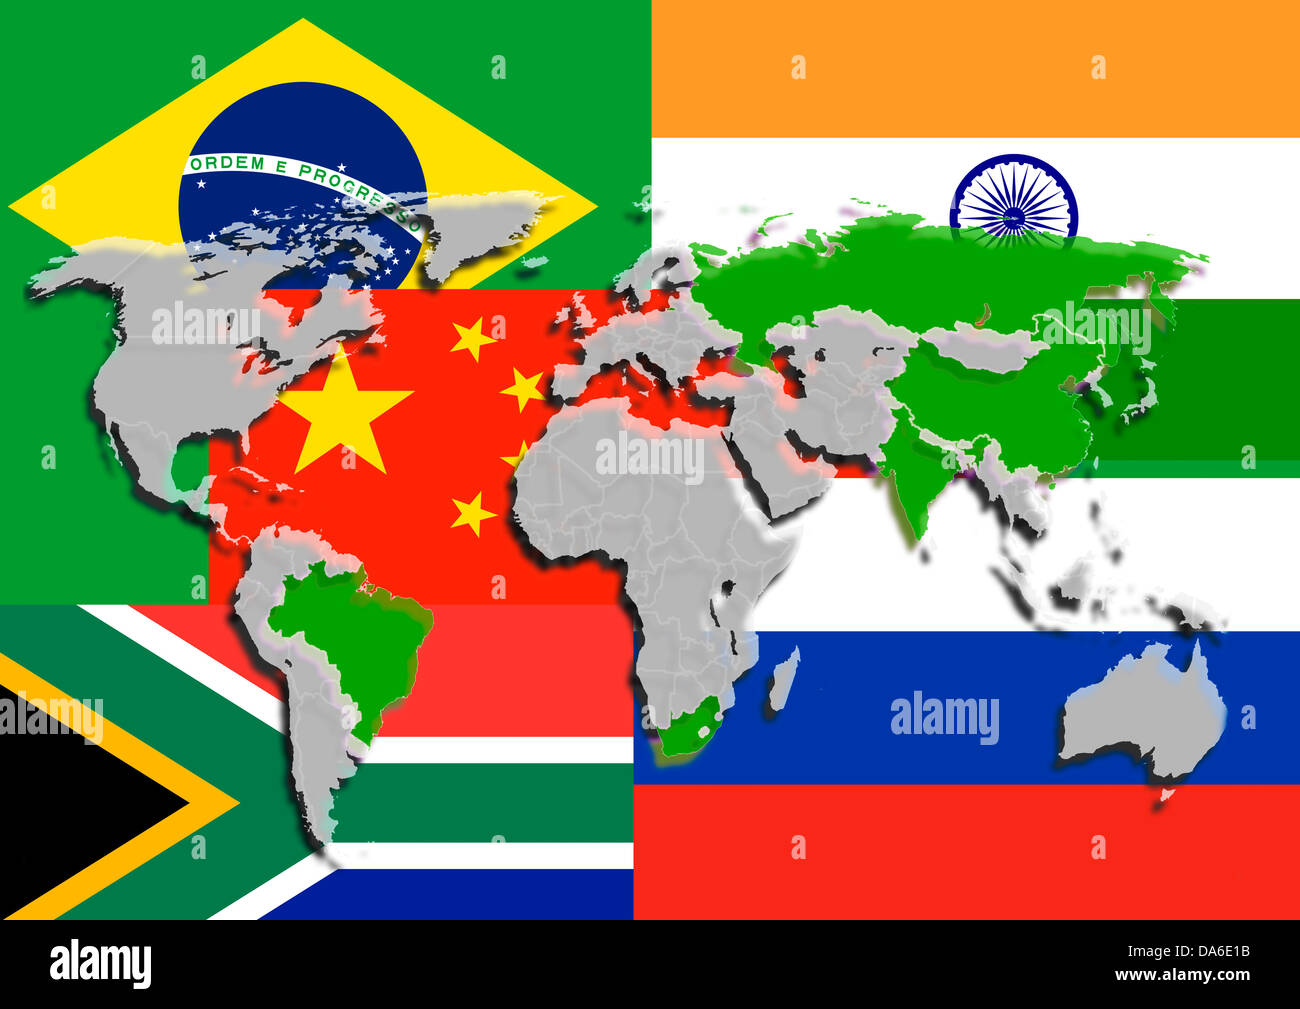 Illustration on the theme BRICS countries with national flags and world map. - Stock Image